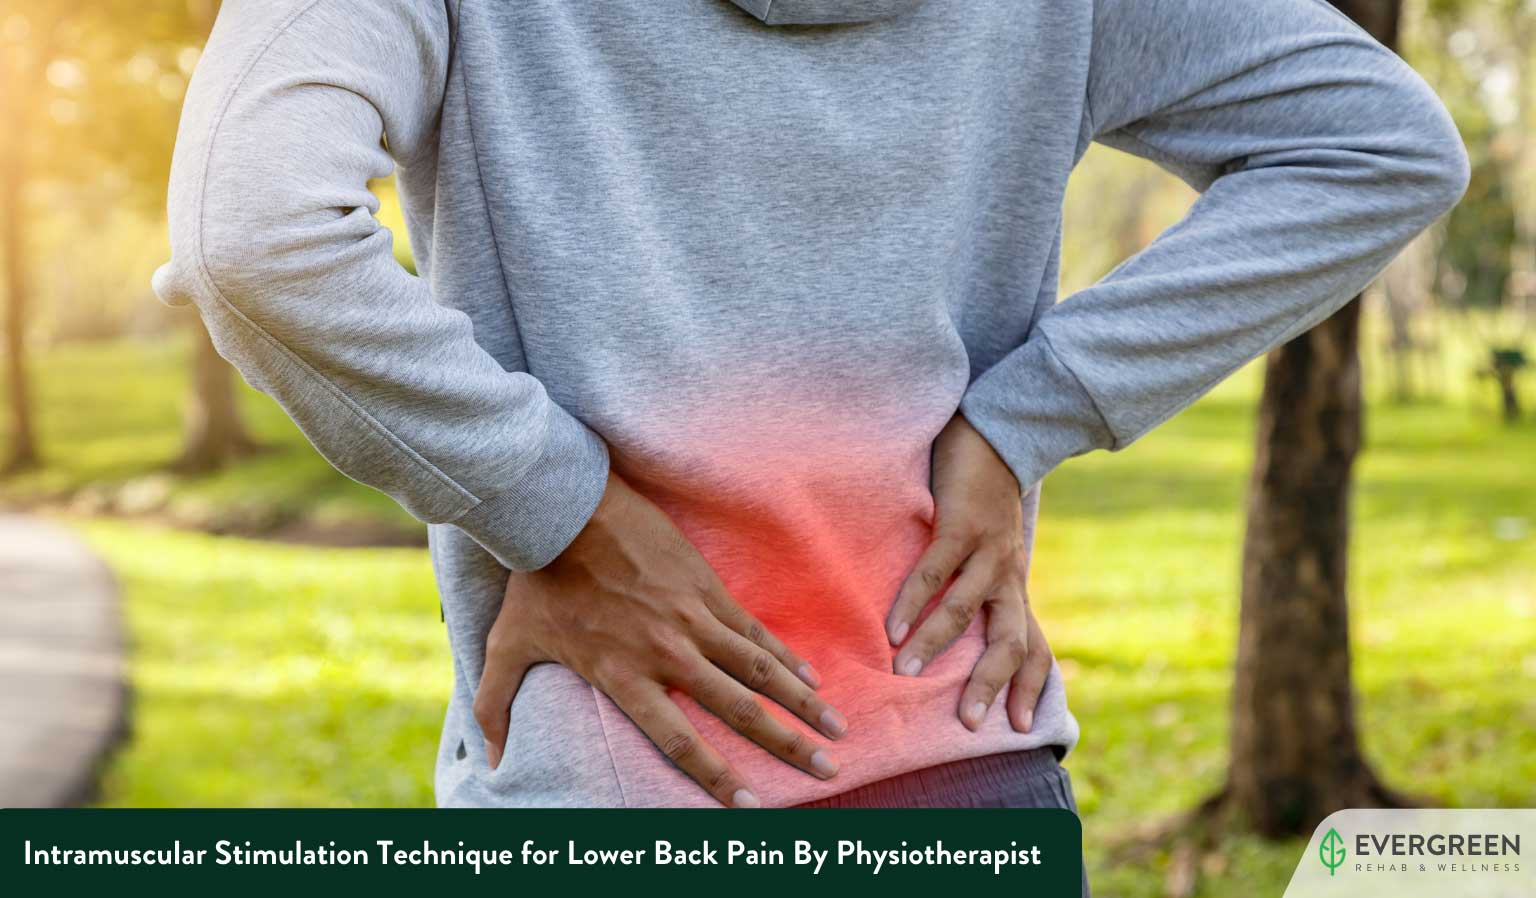 Intramuscular Stimulation Technique for Lower Back Pain By Physiotherapist